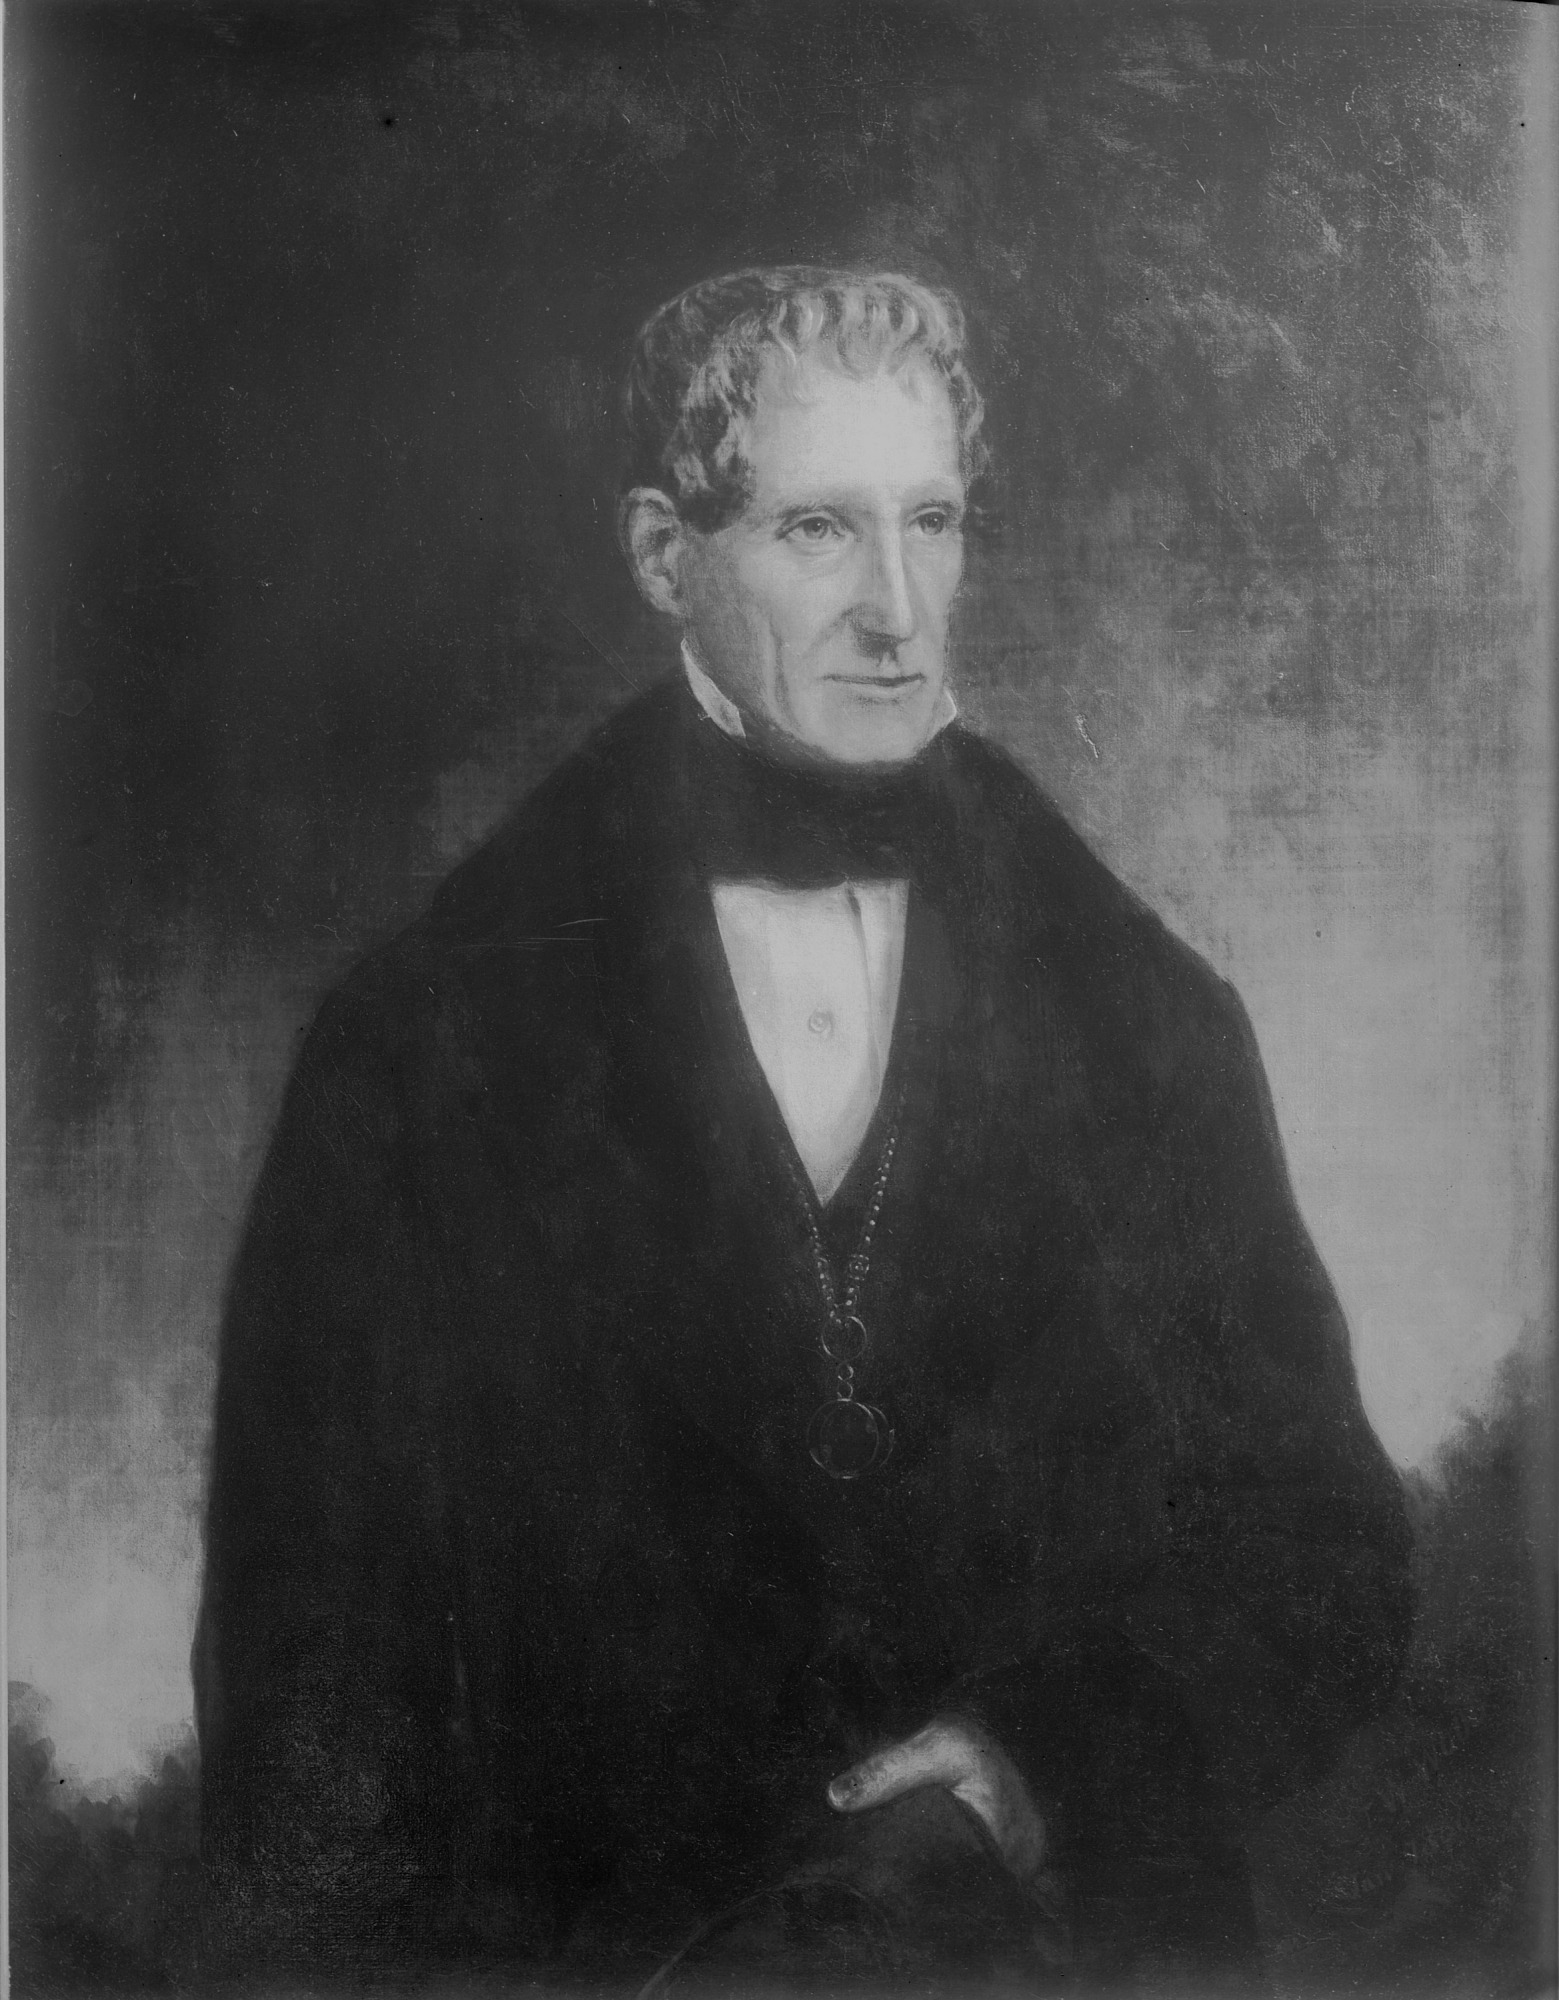 Image is of Richard Rush, 1856, Smithsonian Institution Archives, negative number mah-21419.